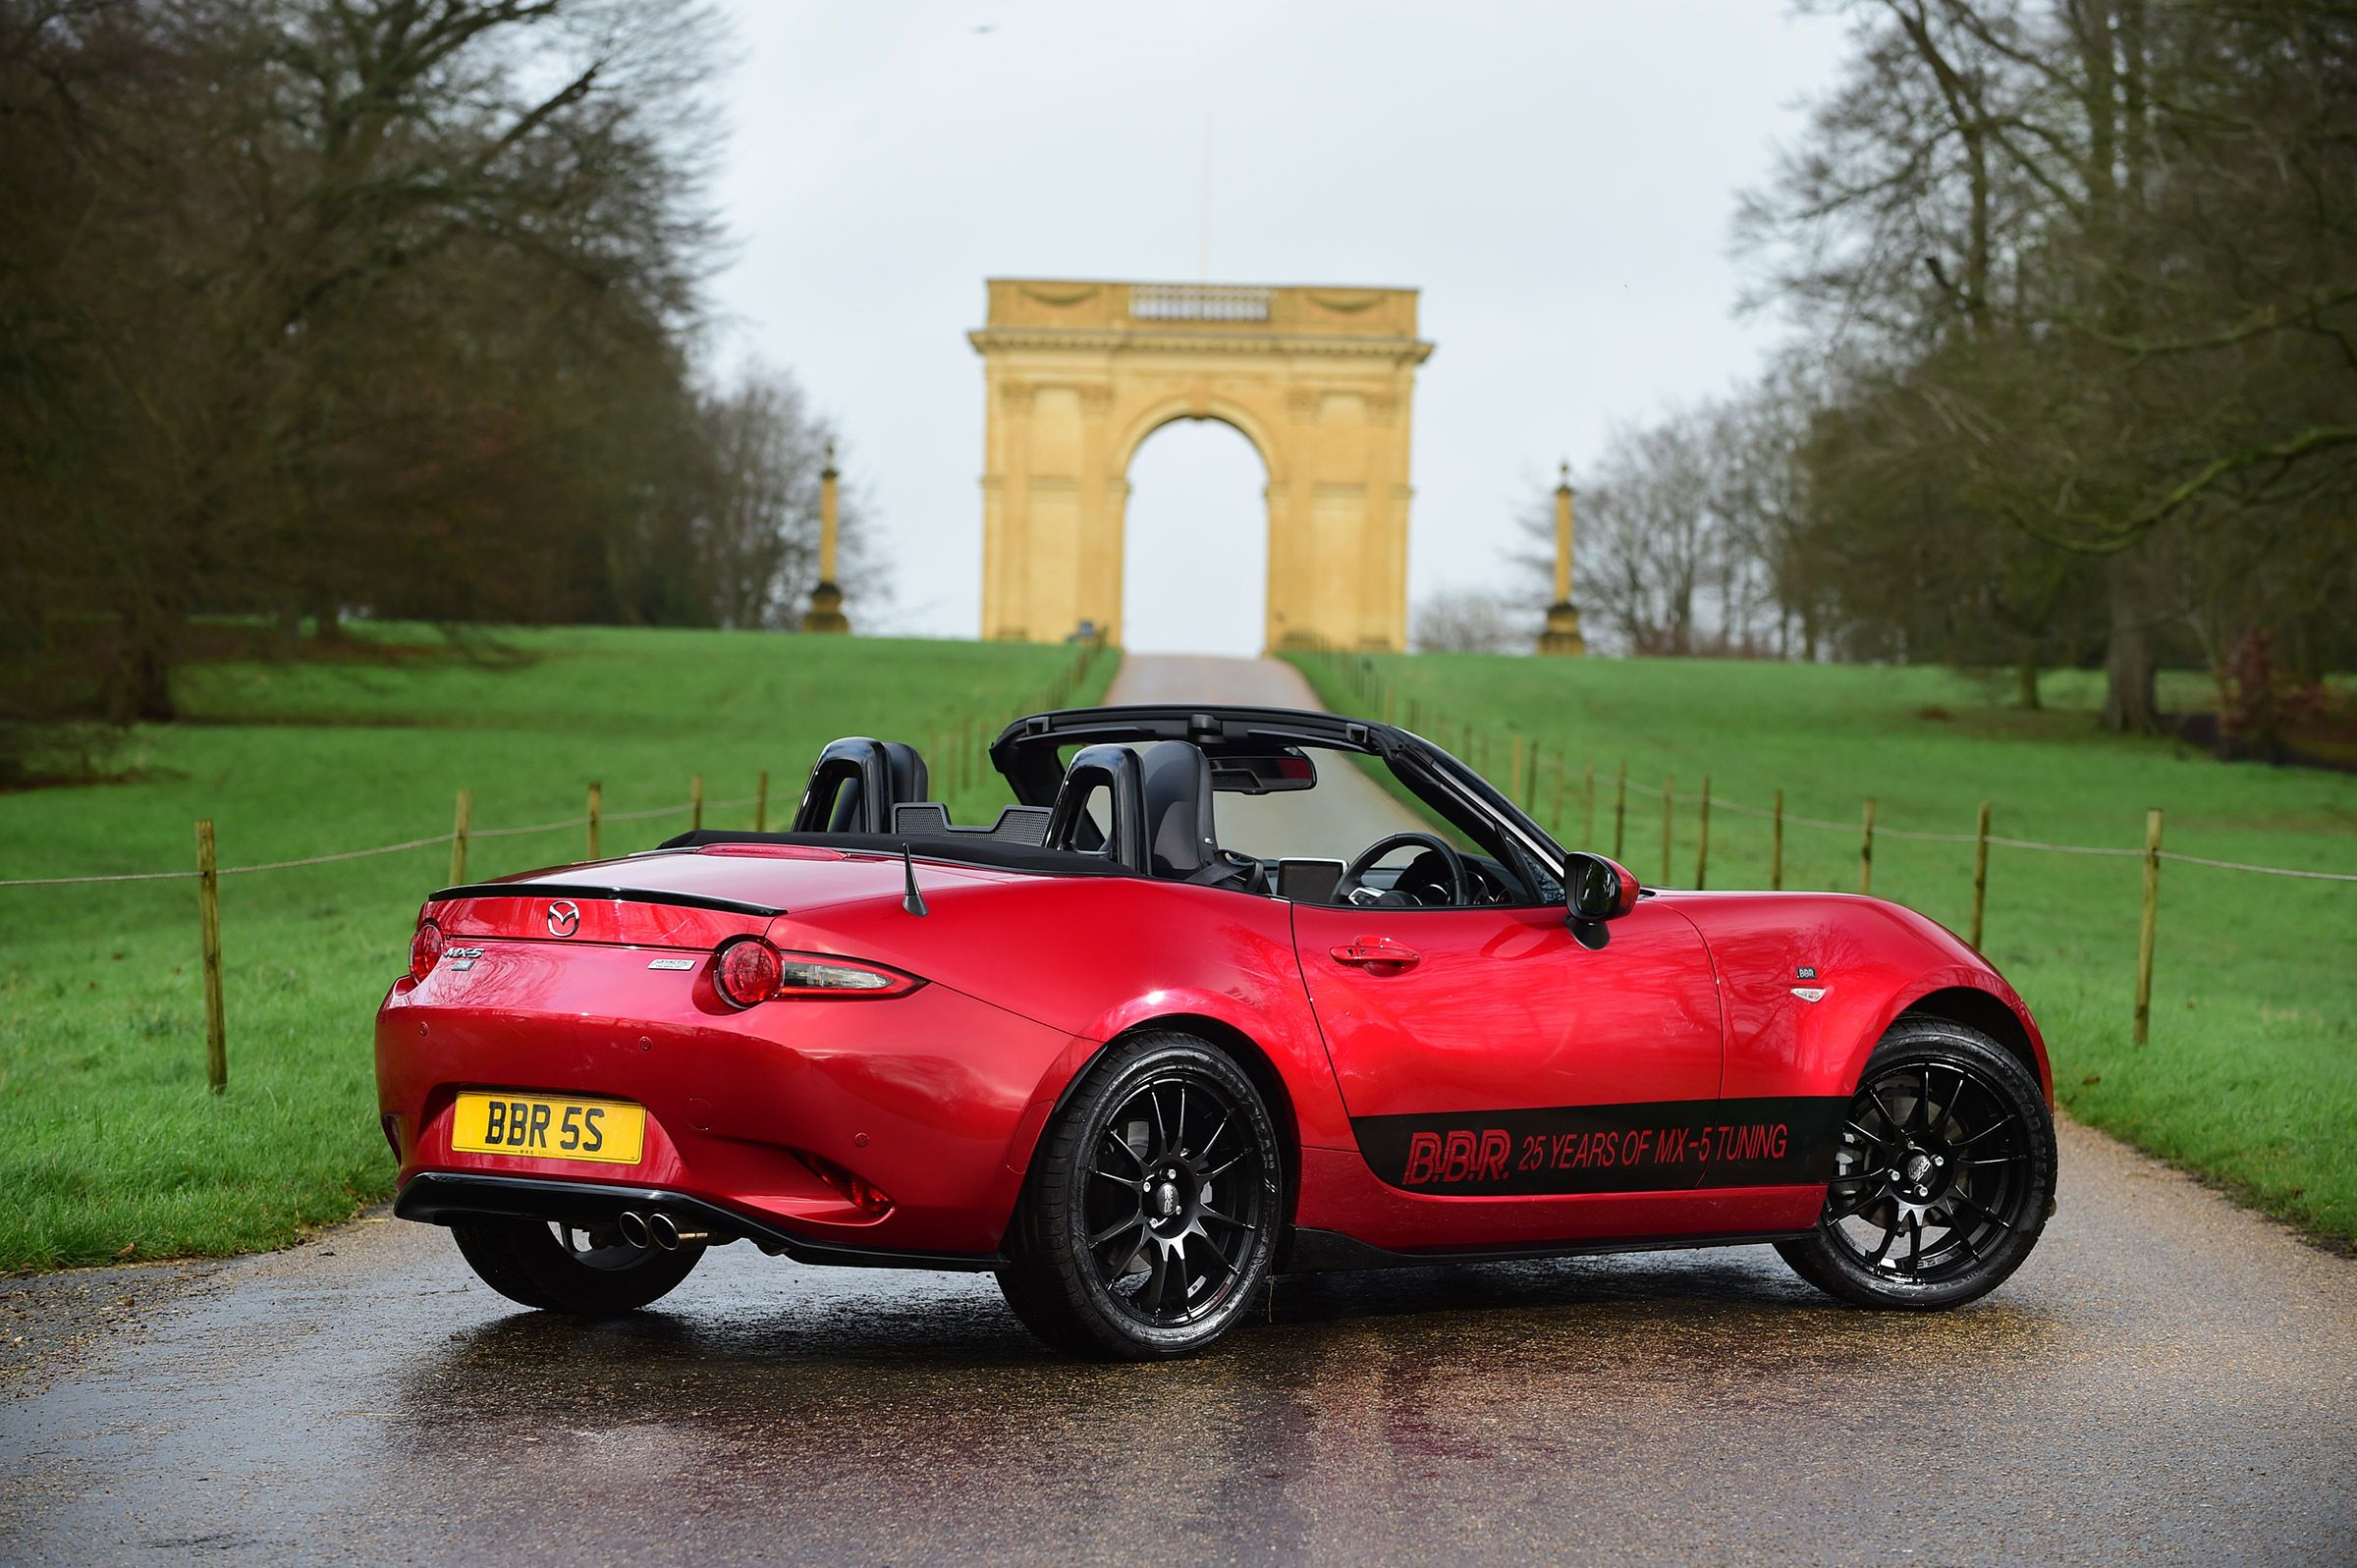 Tuning firm BBR makes Mazda MX 5 roadster more powerful and even